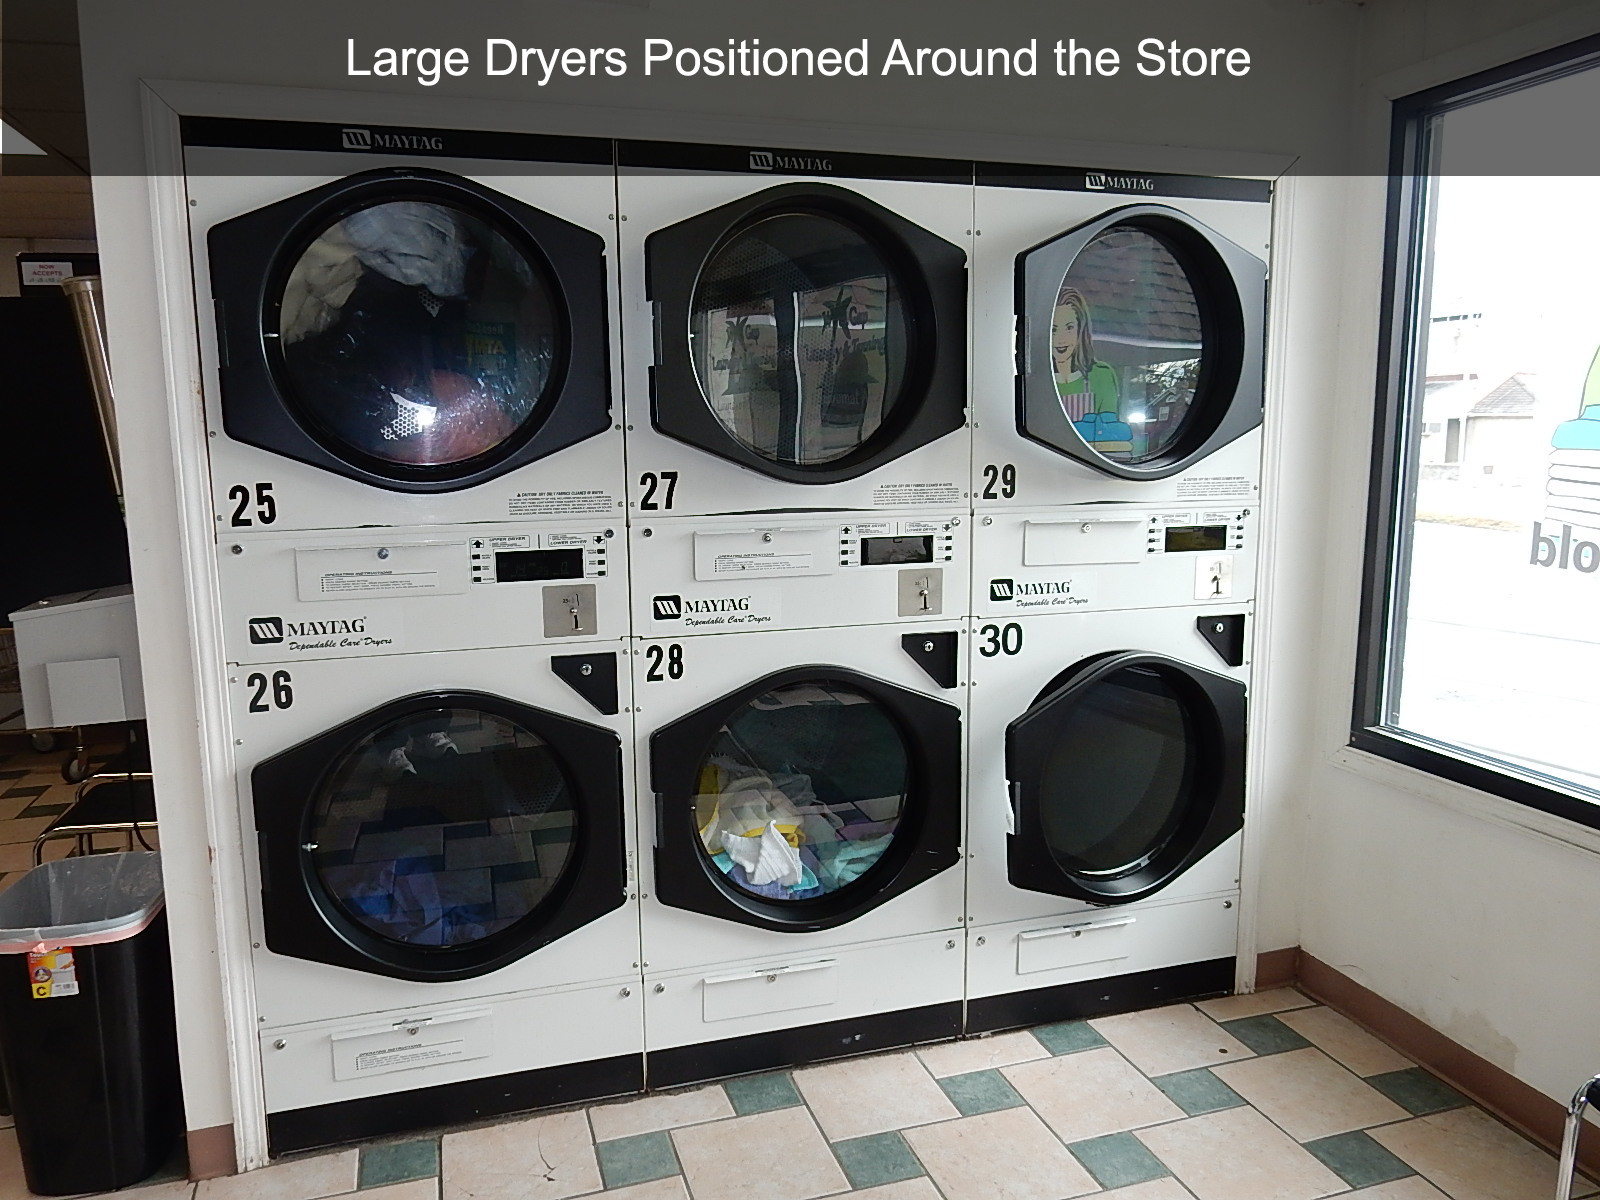 Large Dryers Positioned Around the Store